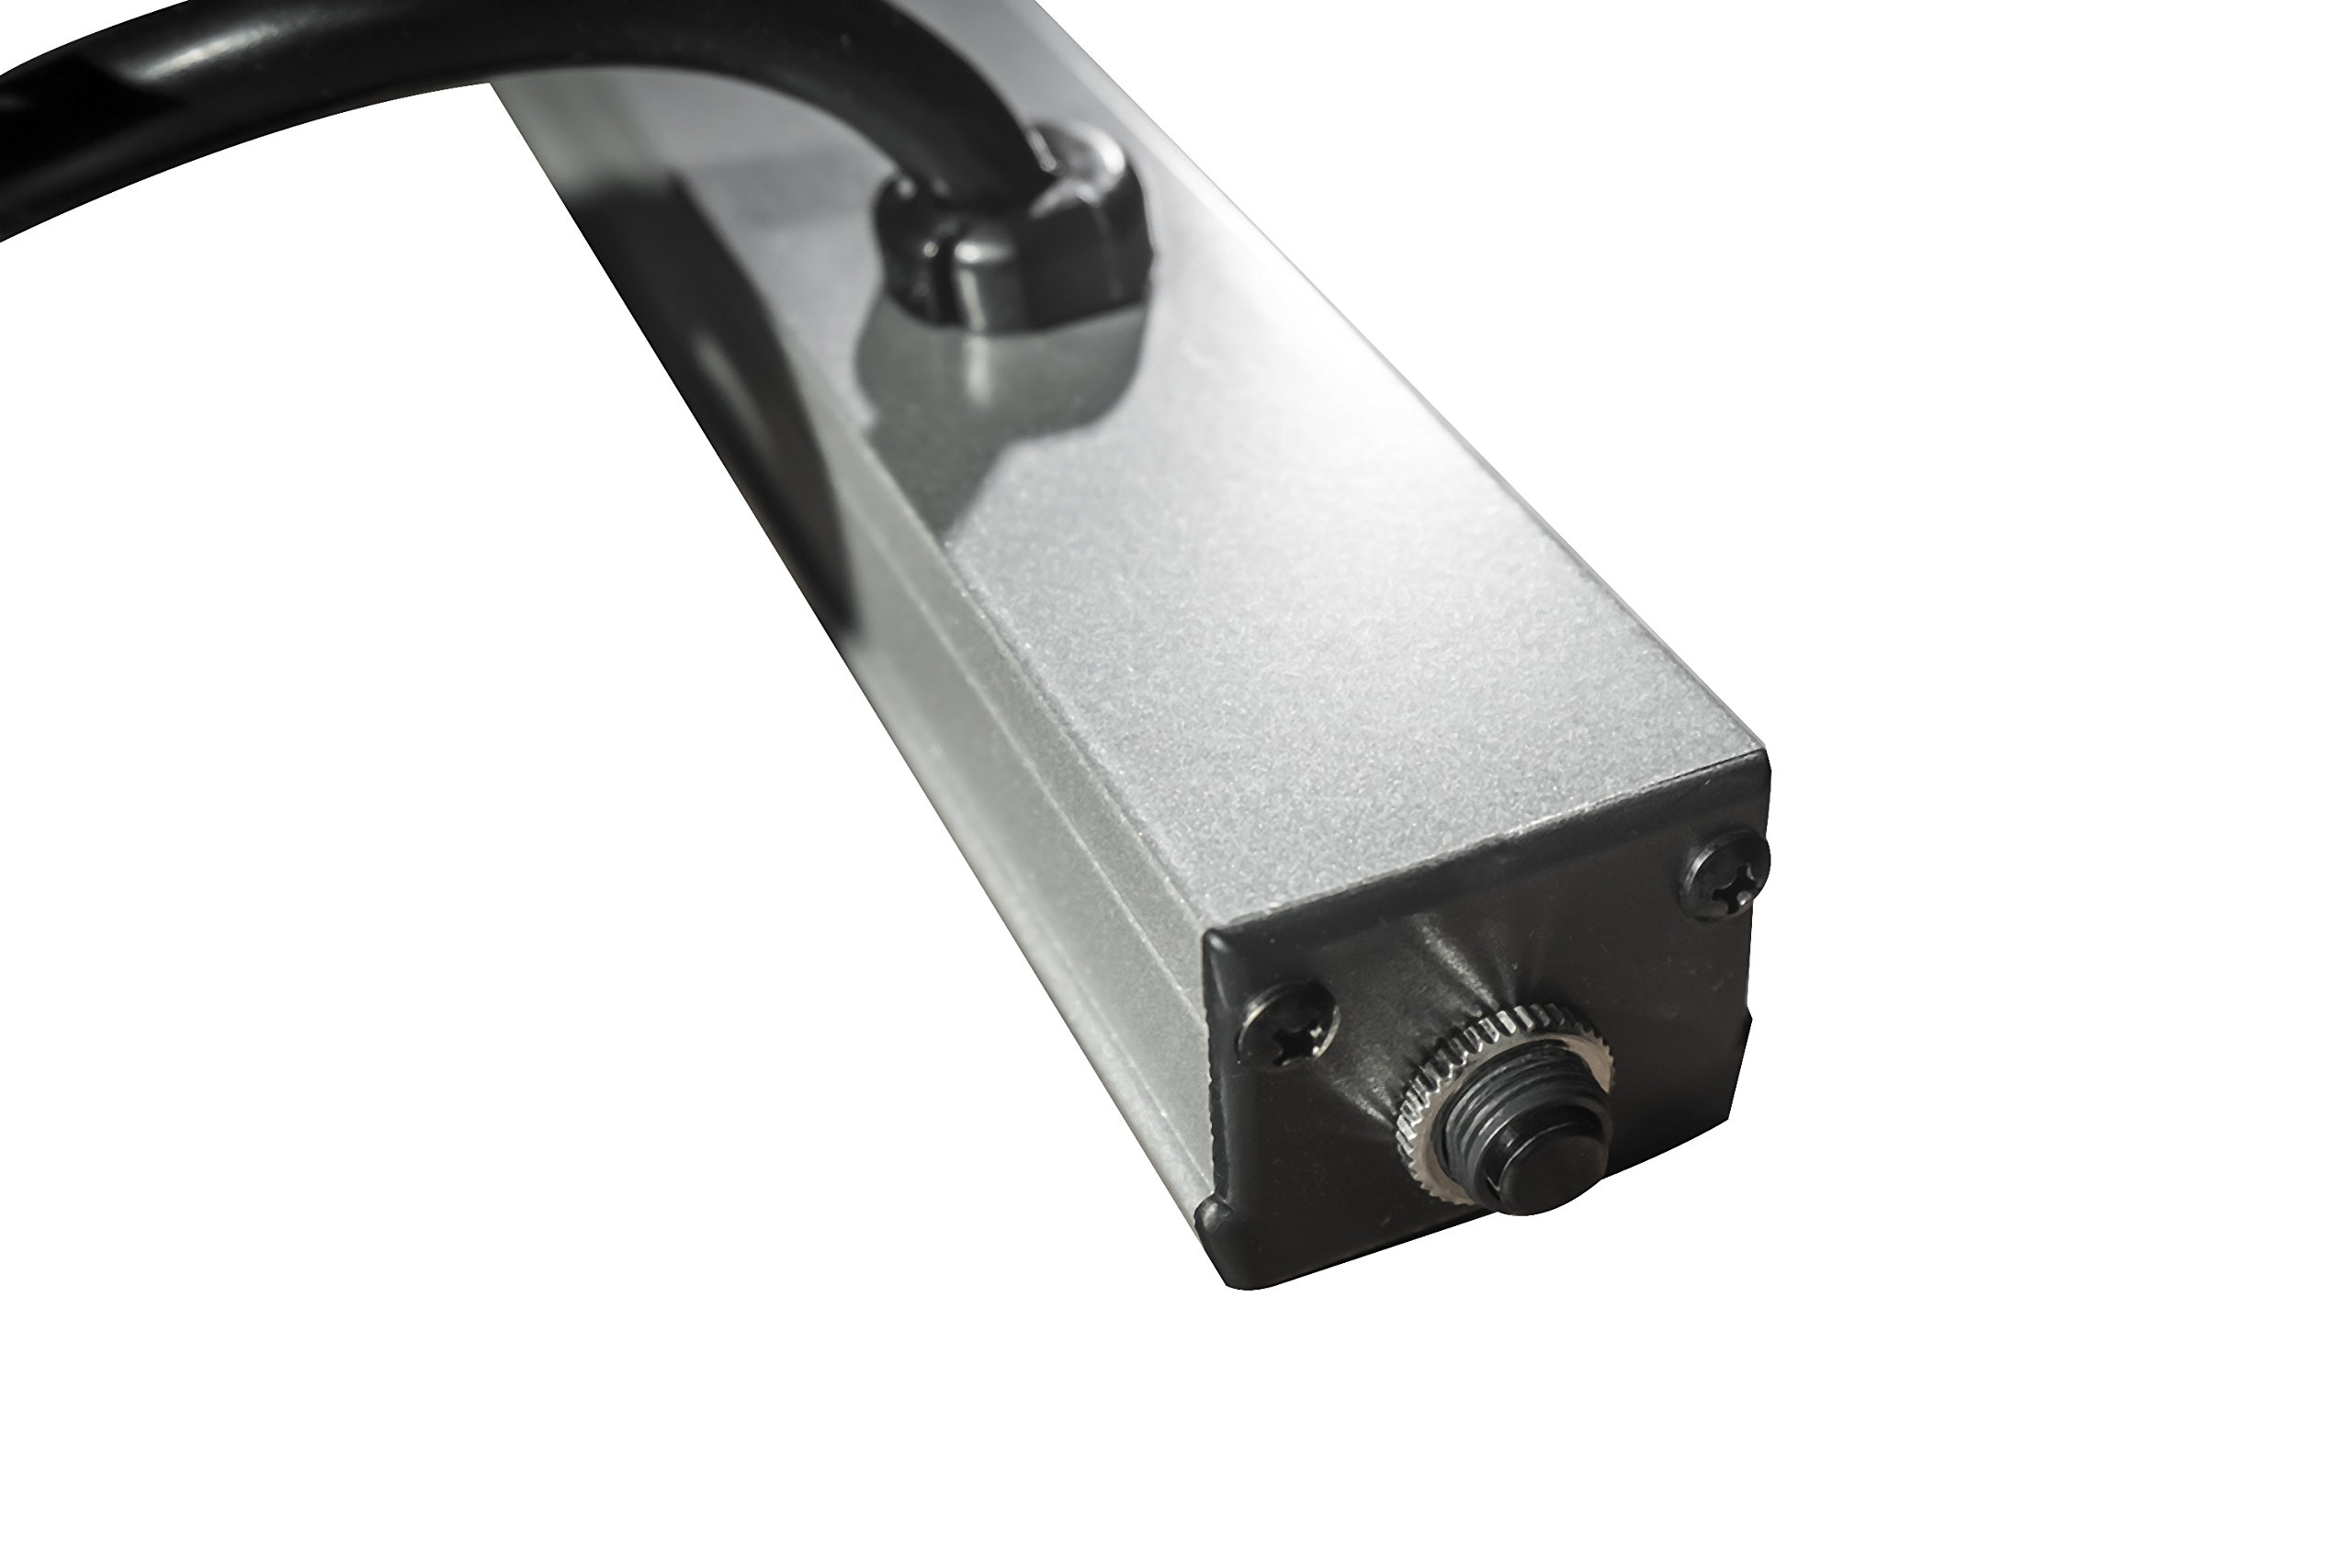 Brooks Power Systems SL20-48-16-6 Slim Line Series Multiple Outlet Strip for Use In Electronic Cabinets, Work Benches, Lab Tables & OEM Applications, 16 Outlets, 6 Foot Cord, Gray by Brooks Power Systems (Image #2)